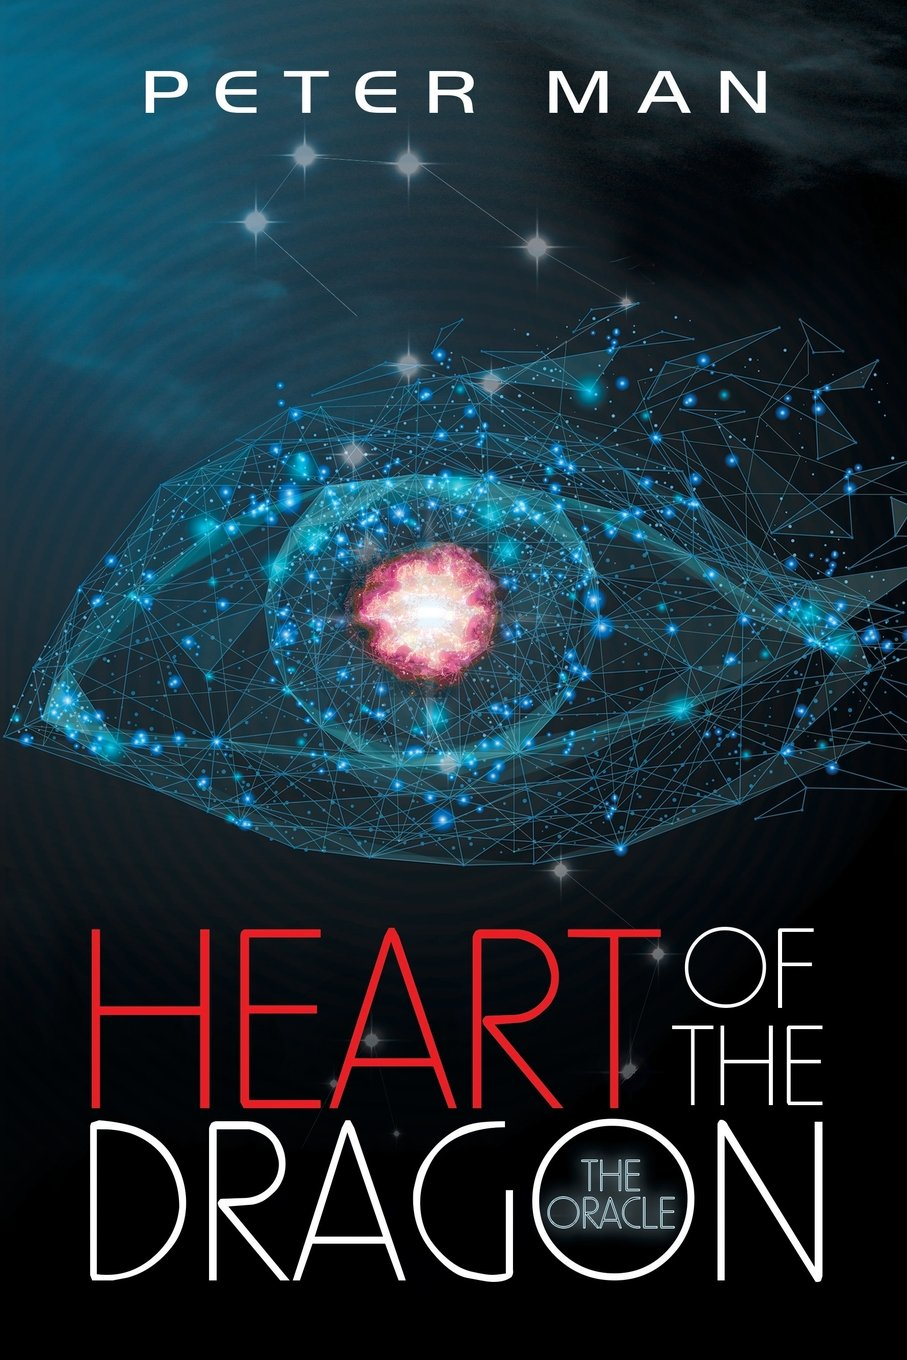 Heart of the Dragon: The Oracle pdf epub